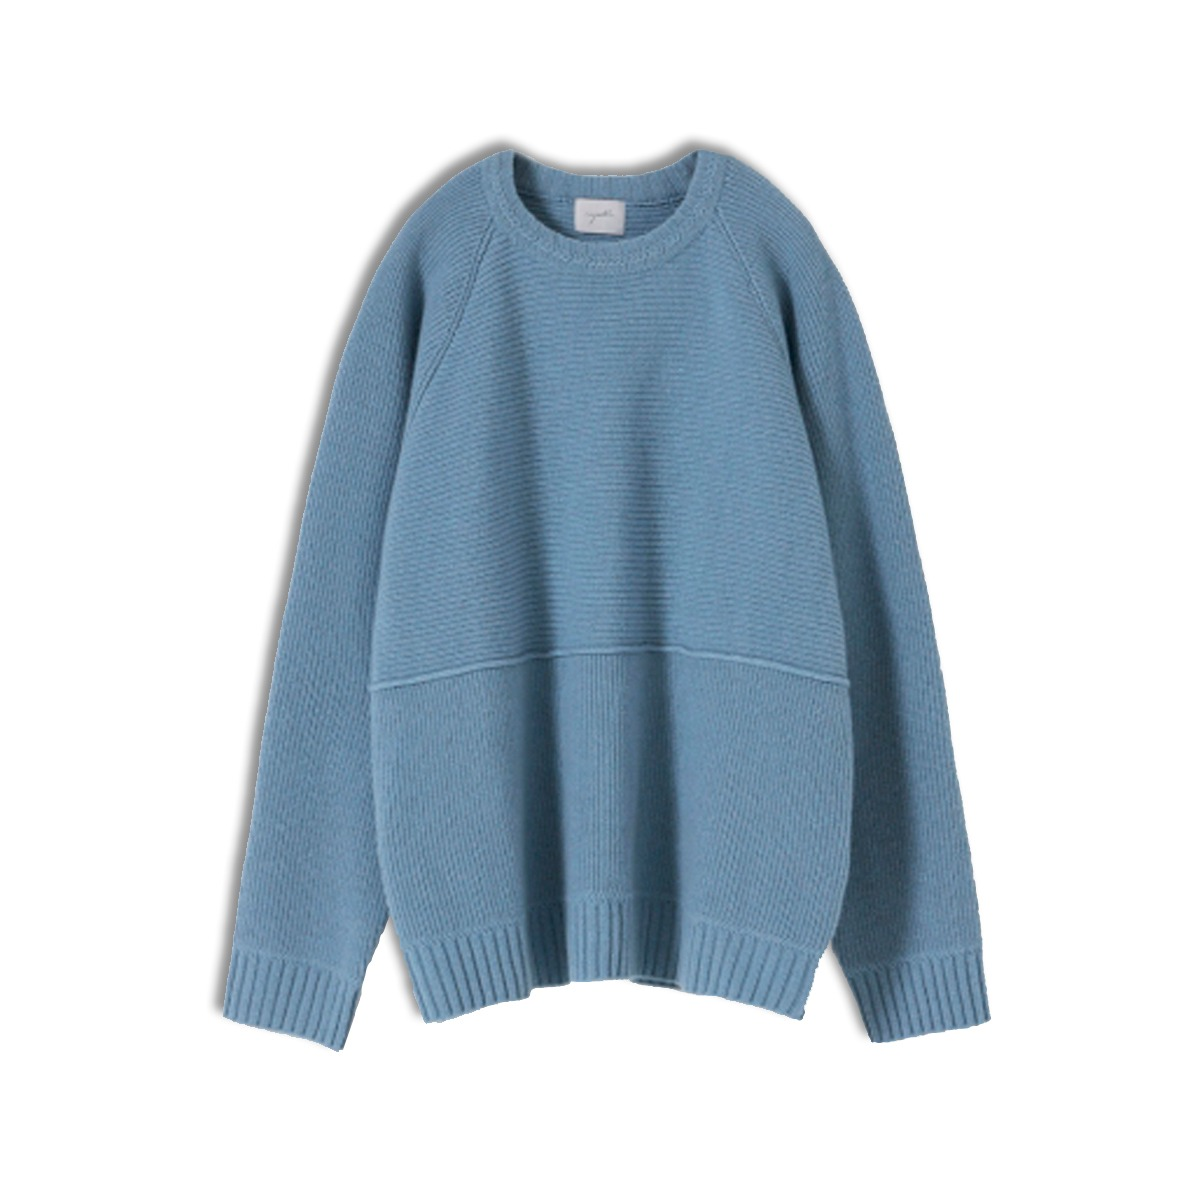 [YOUTH] STRUCTURED SWEATER 'PALE BLUE'